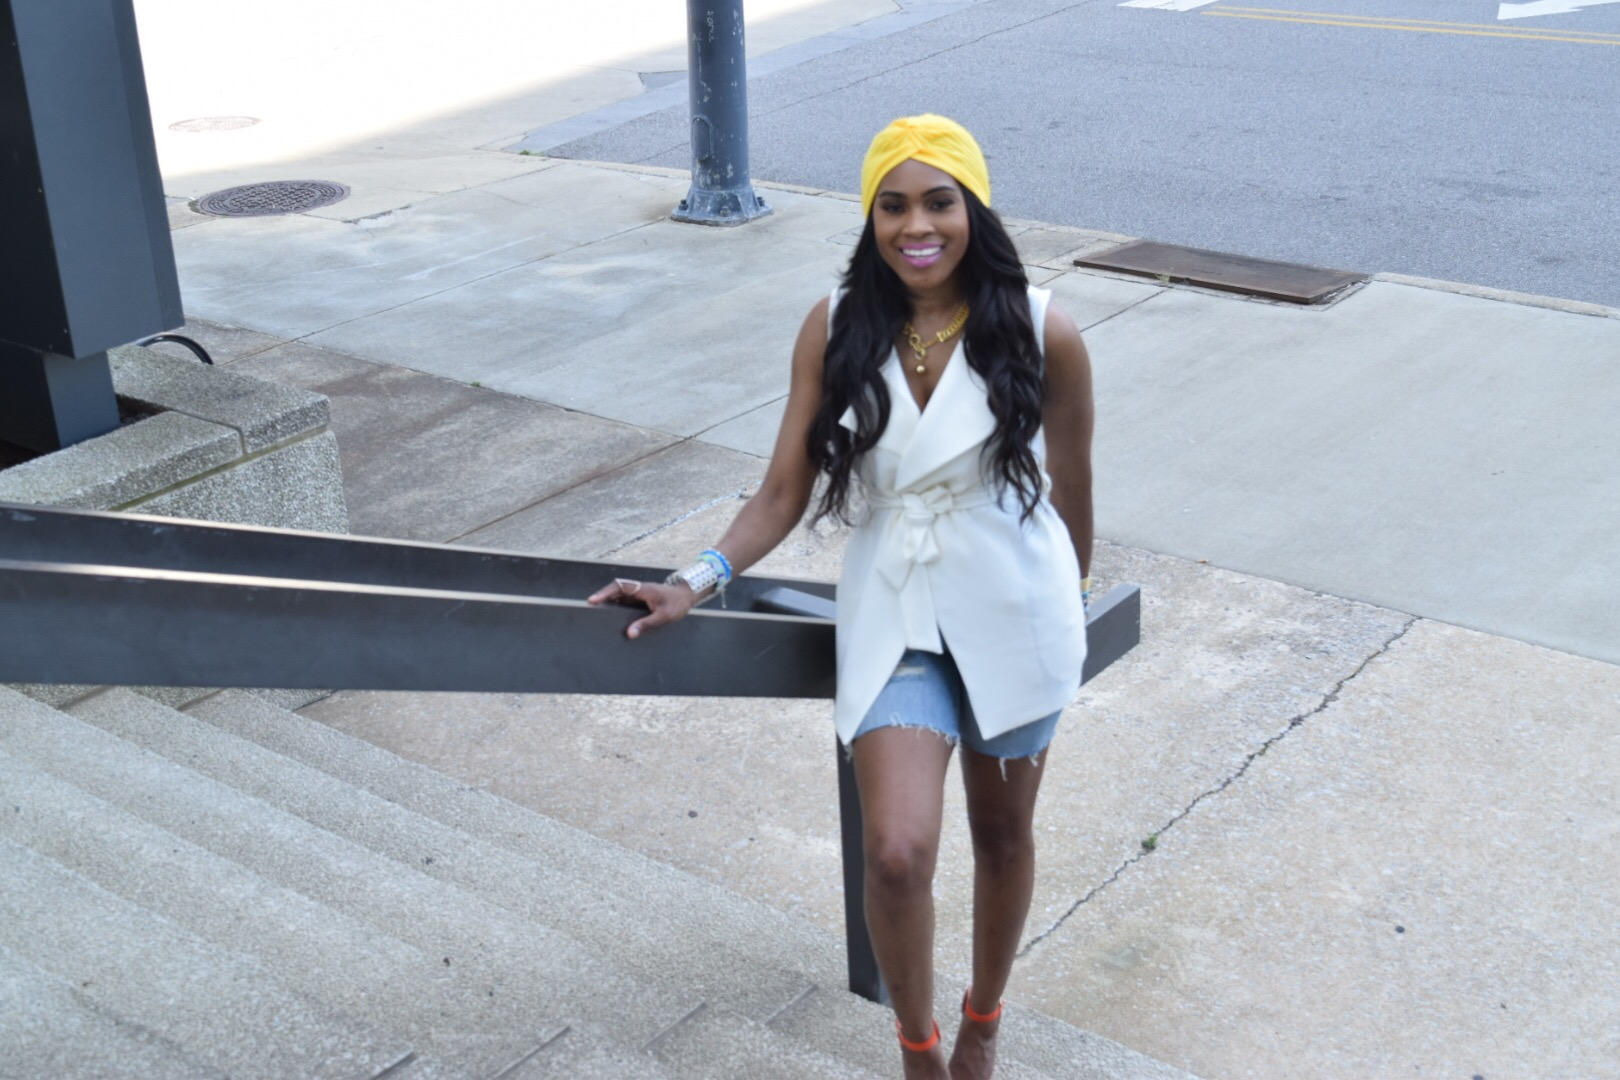 Style-Files-Forever 21-White-Longline Belted-Vest-Mossimo-Denim-Distressed--shorts-Justfab-Orange-heel-kati-sandals-yellow-turban-mirror-sunglasses-oohlalablog-12